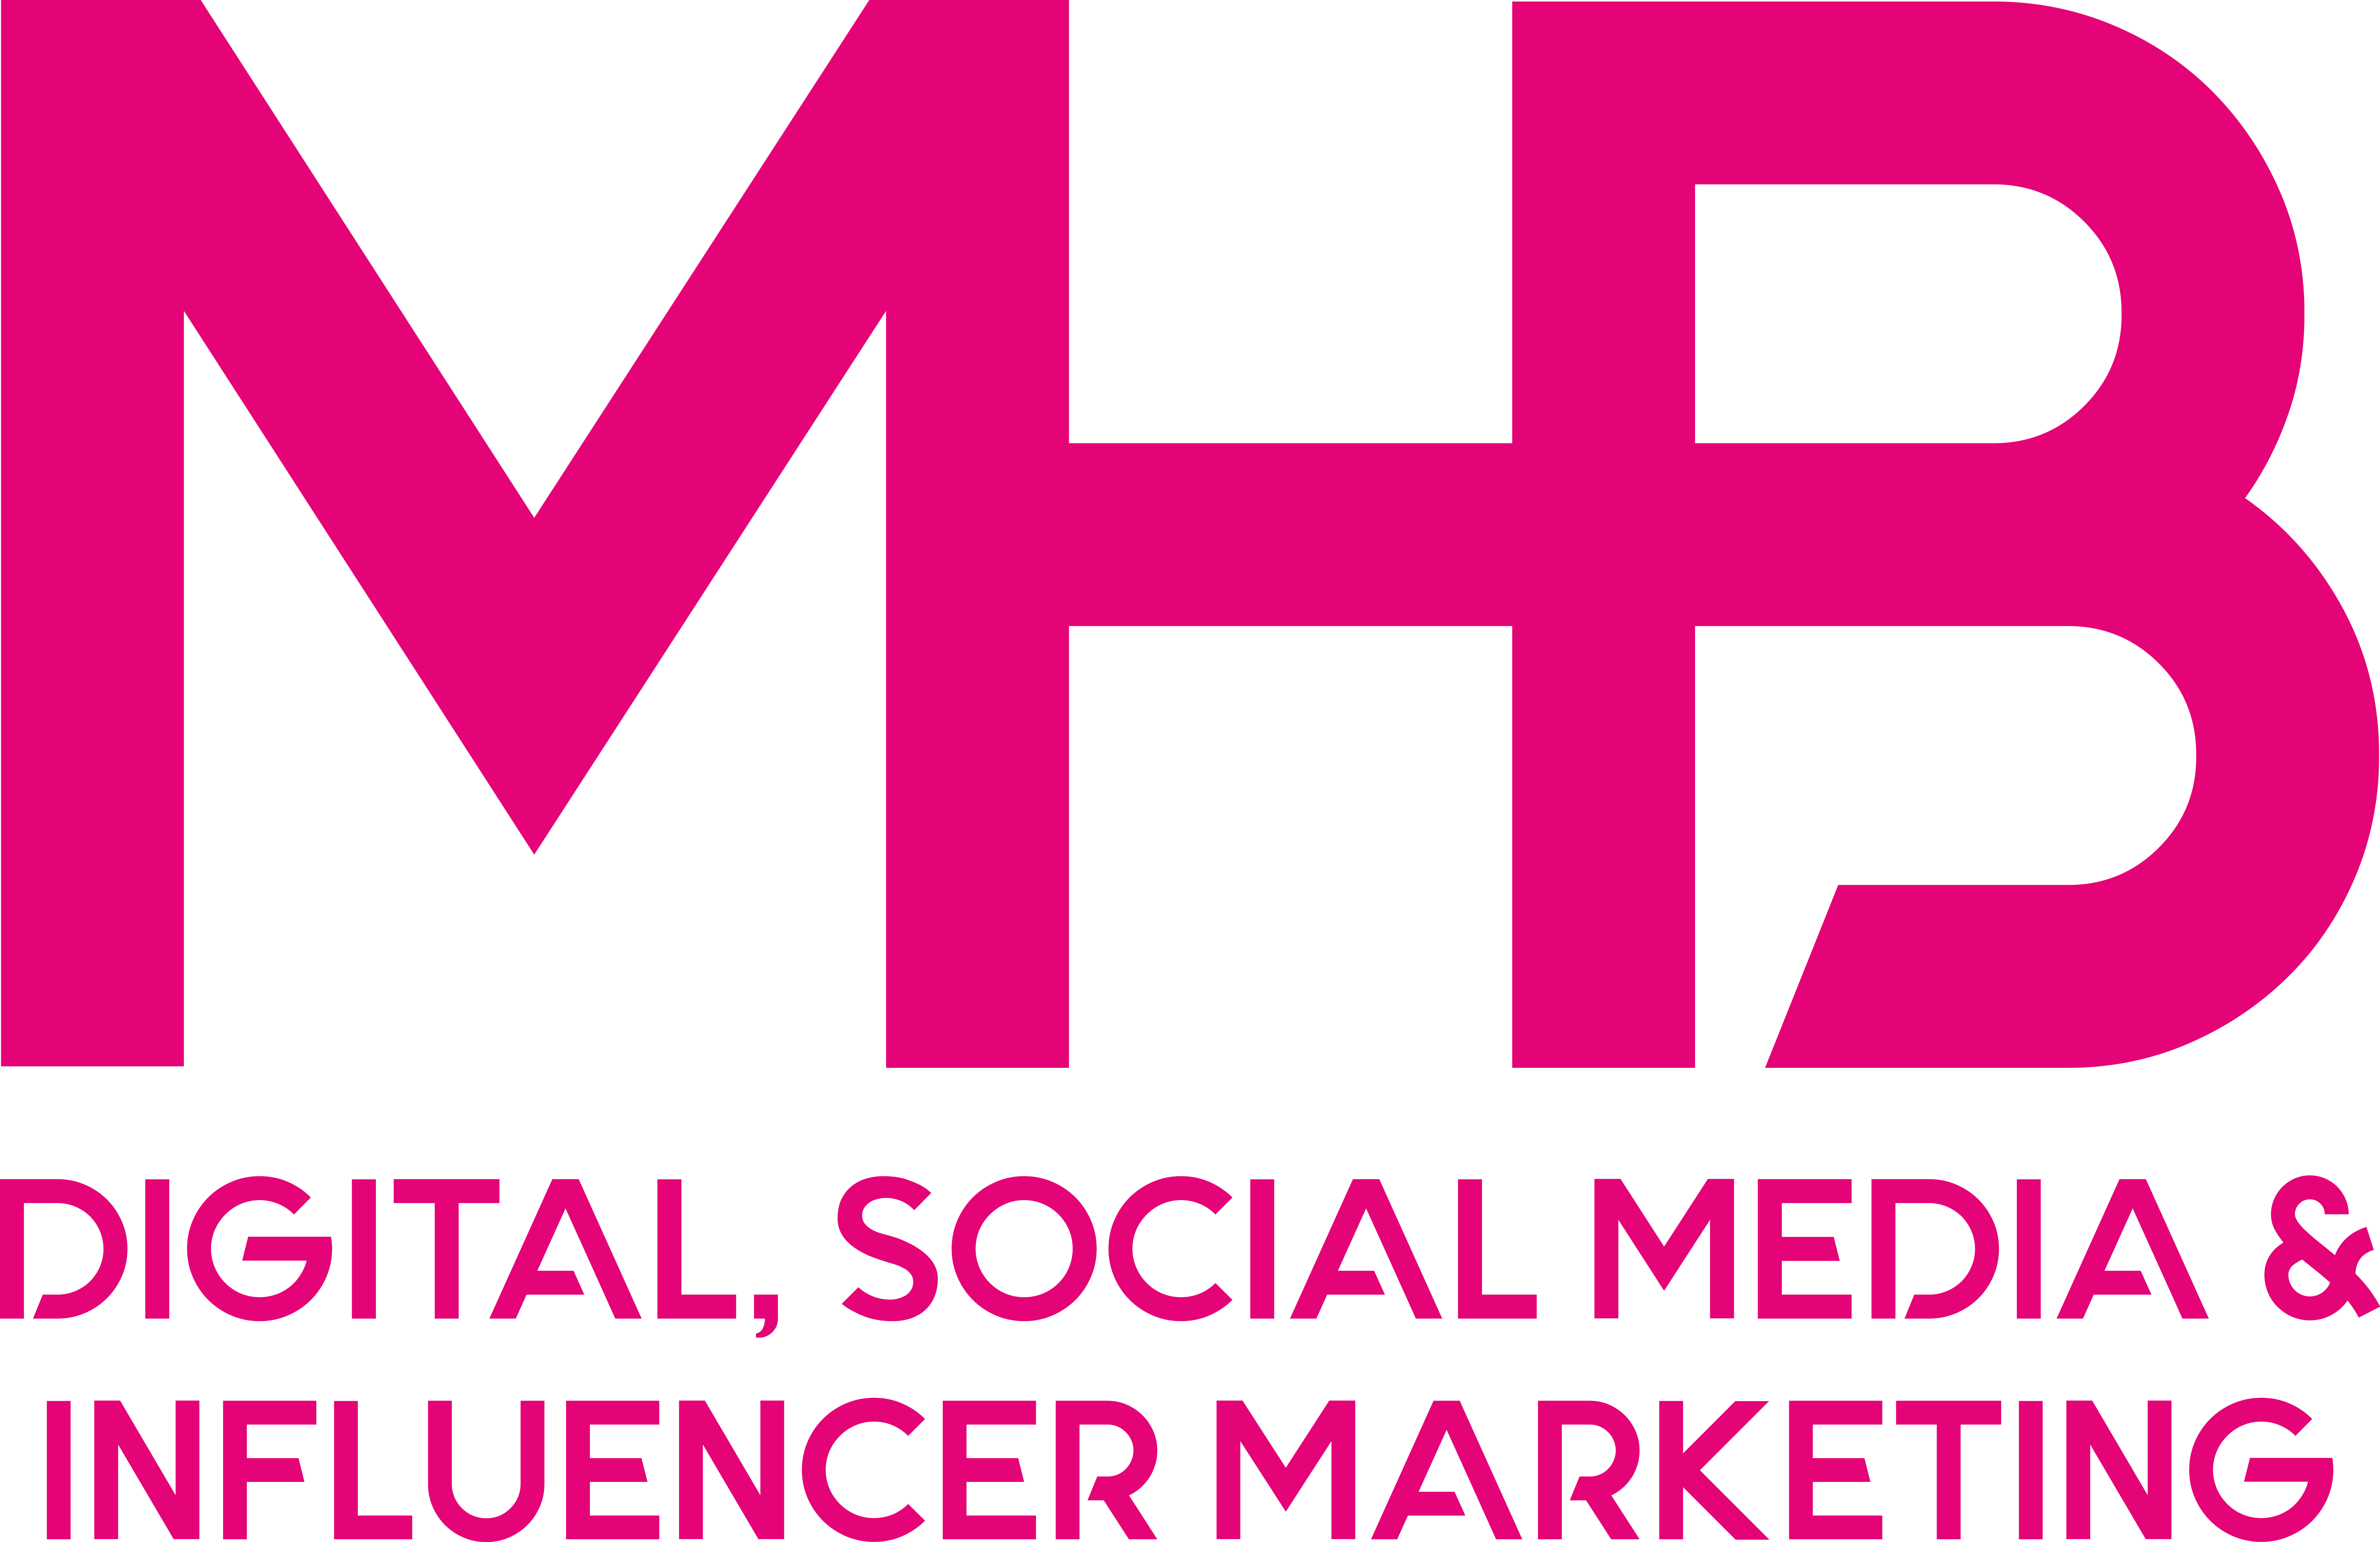 Digital, Social Media & Influencer Marketing Agency